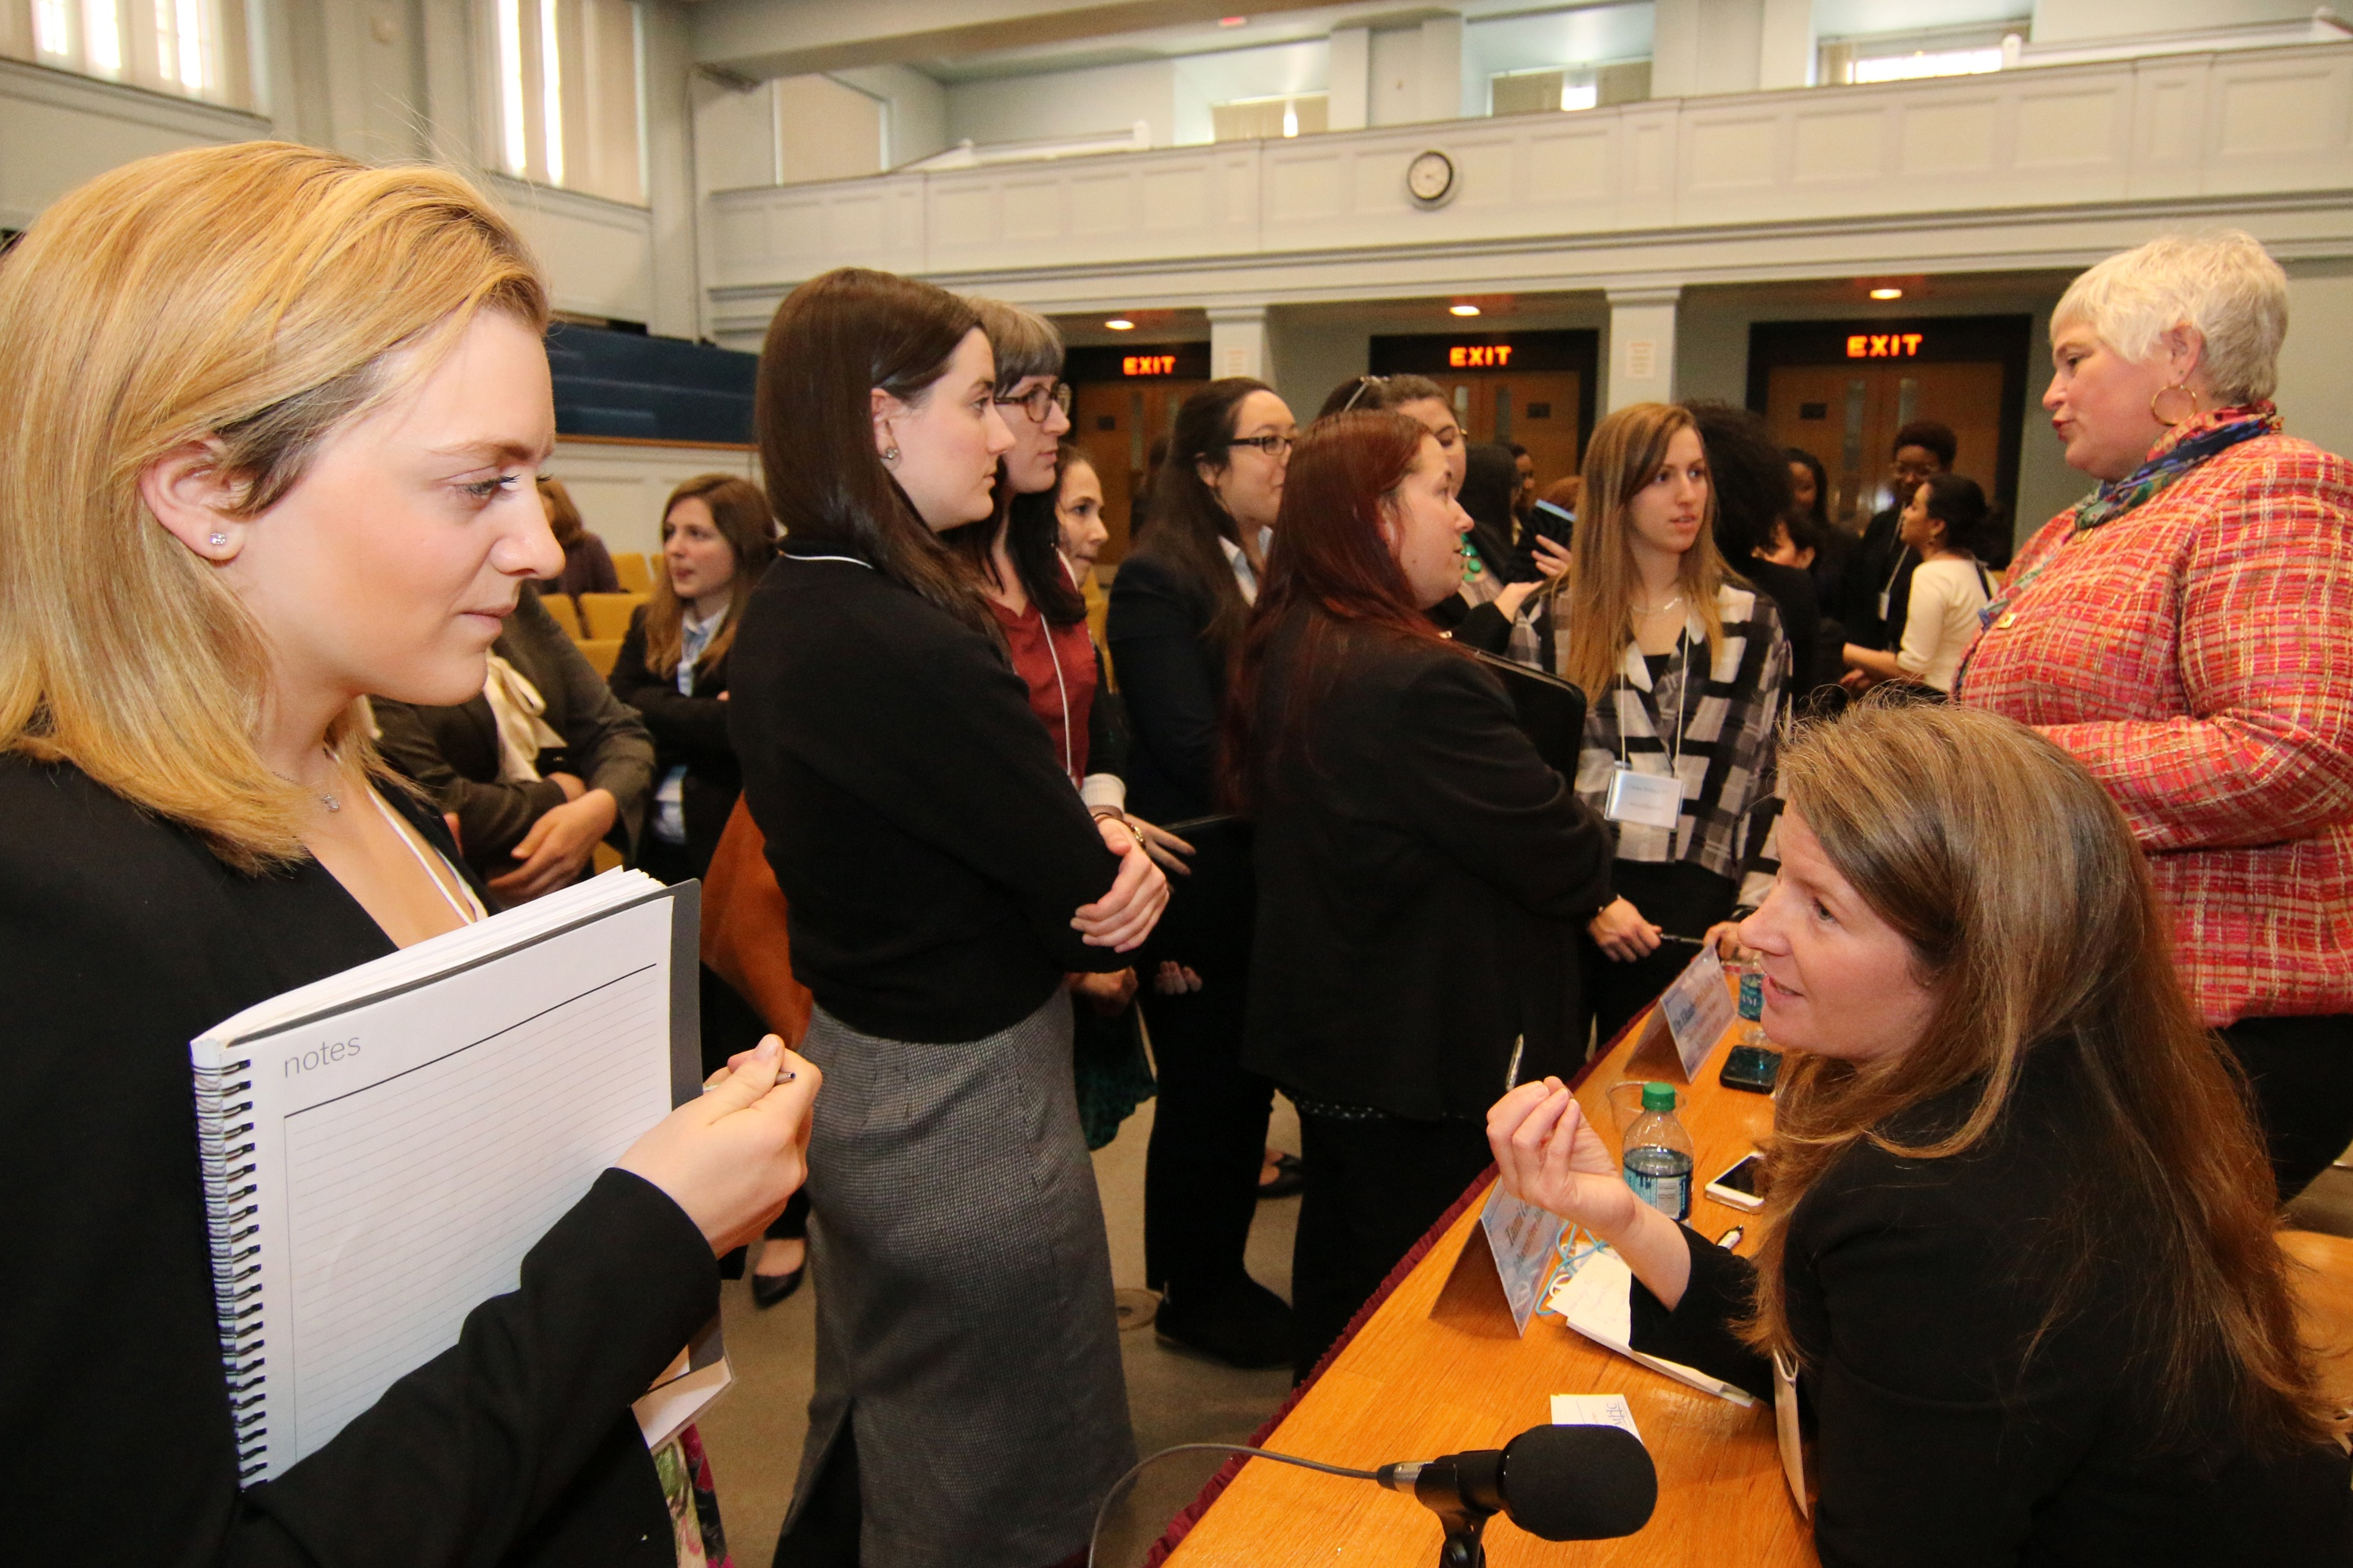 networking with professional associations can get you inside info